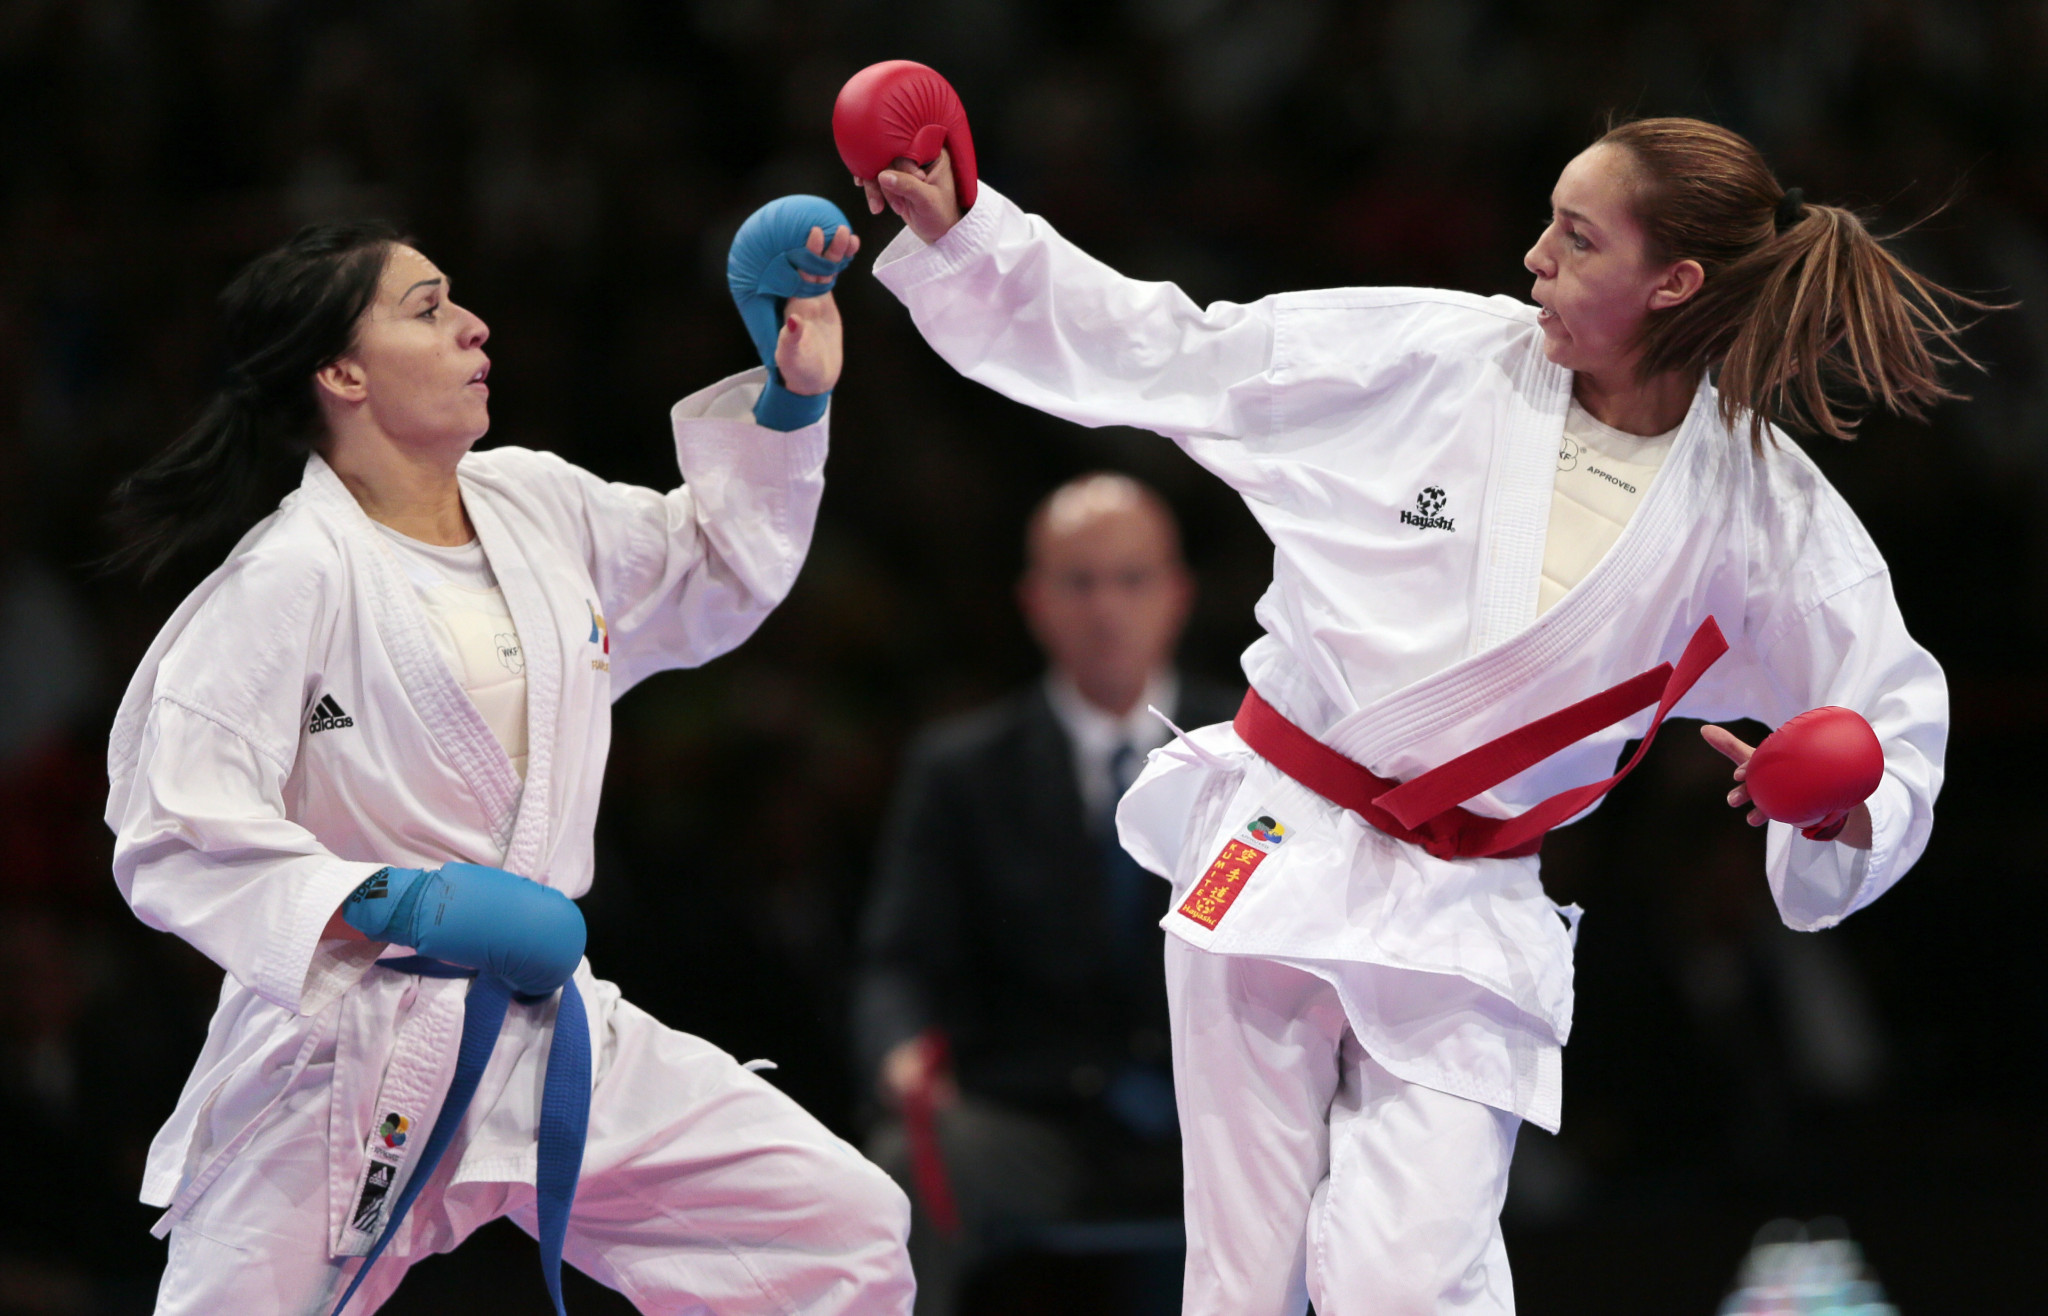 Boutheina Hasnaoui, right, won silver at the 2012 World Karate Championships in Paris ©Getty Images